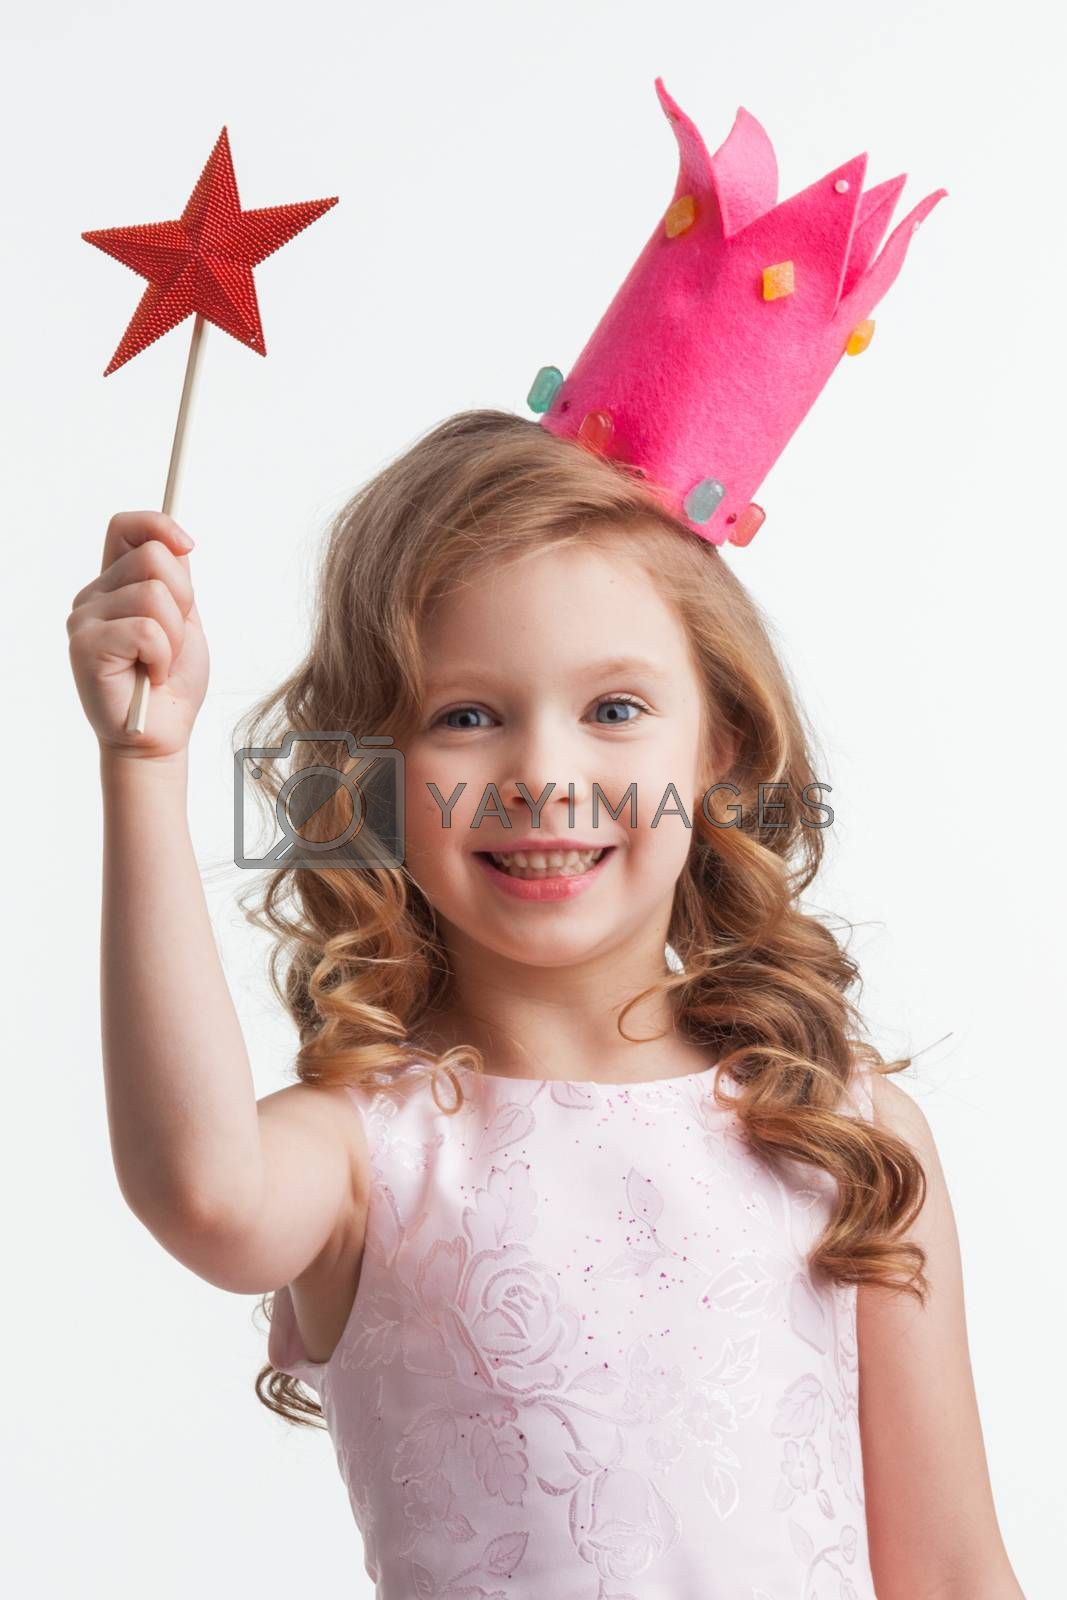 Beautiful little candy princess girl in crown holding star shaped magic wand